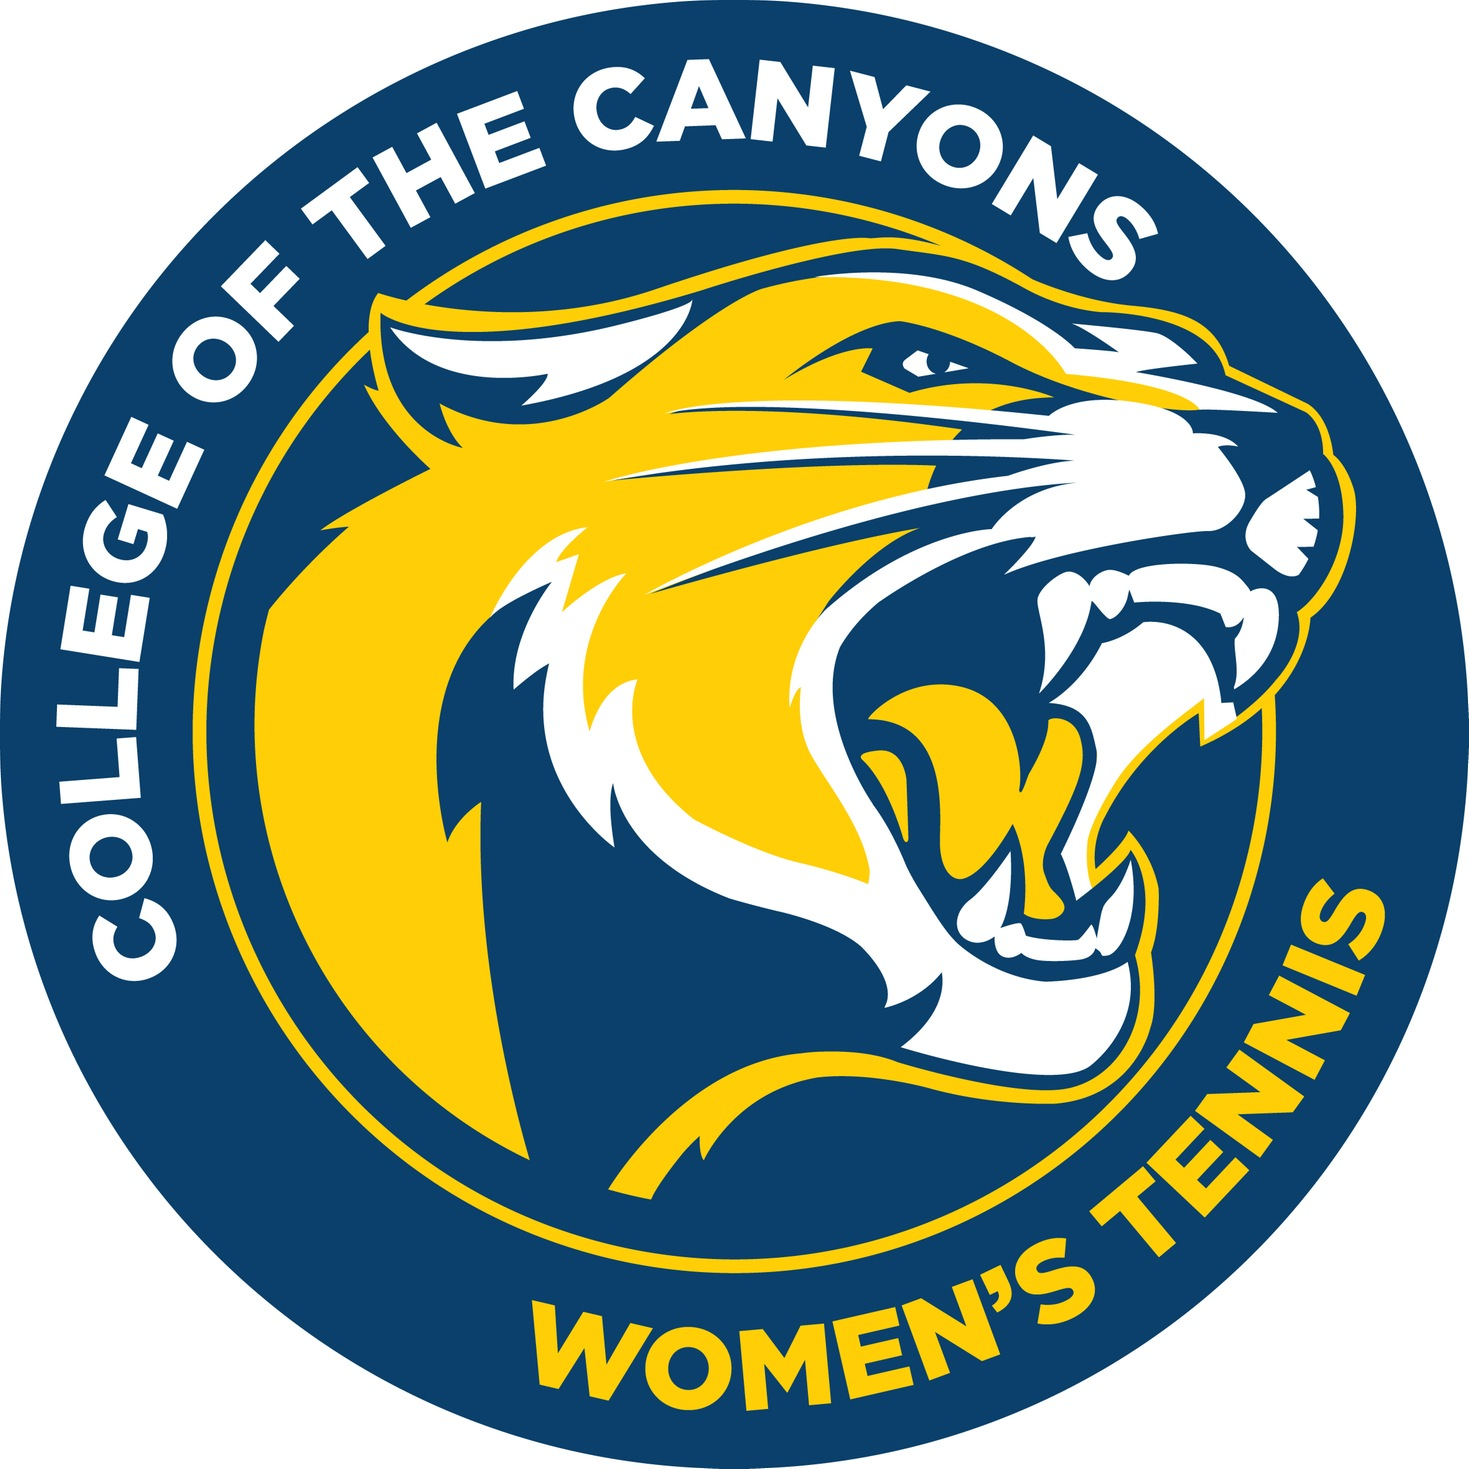 College of the Canyons women's tennis logo.